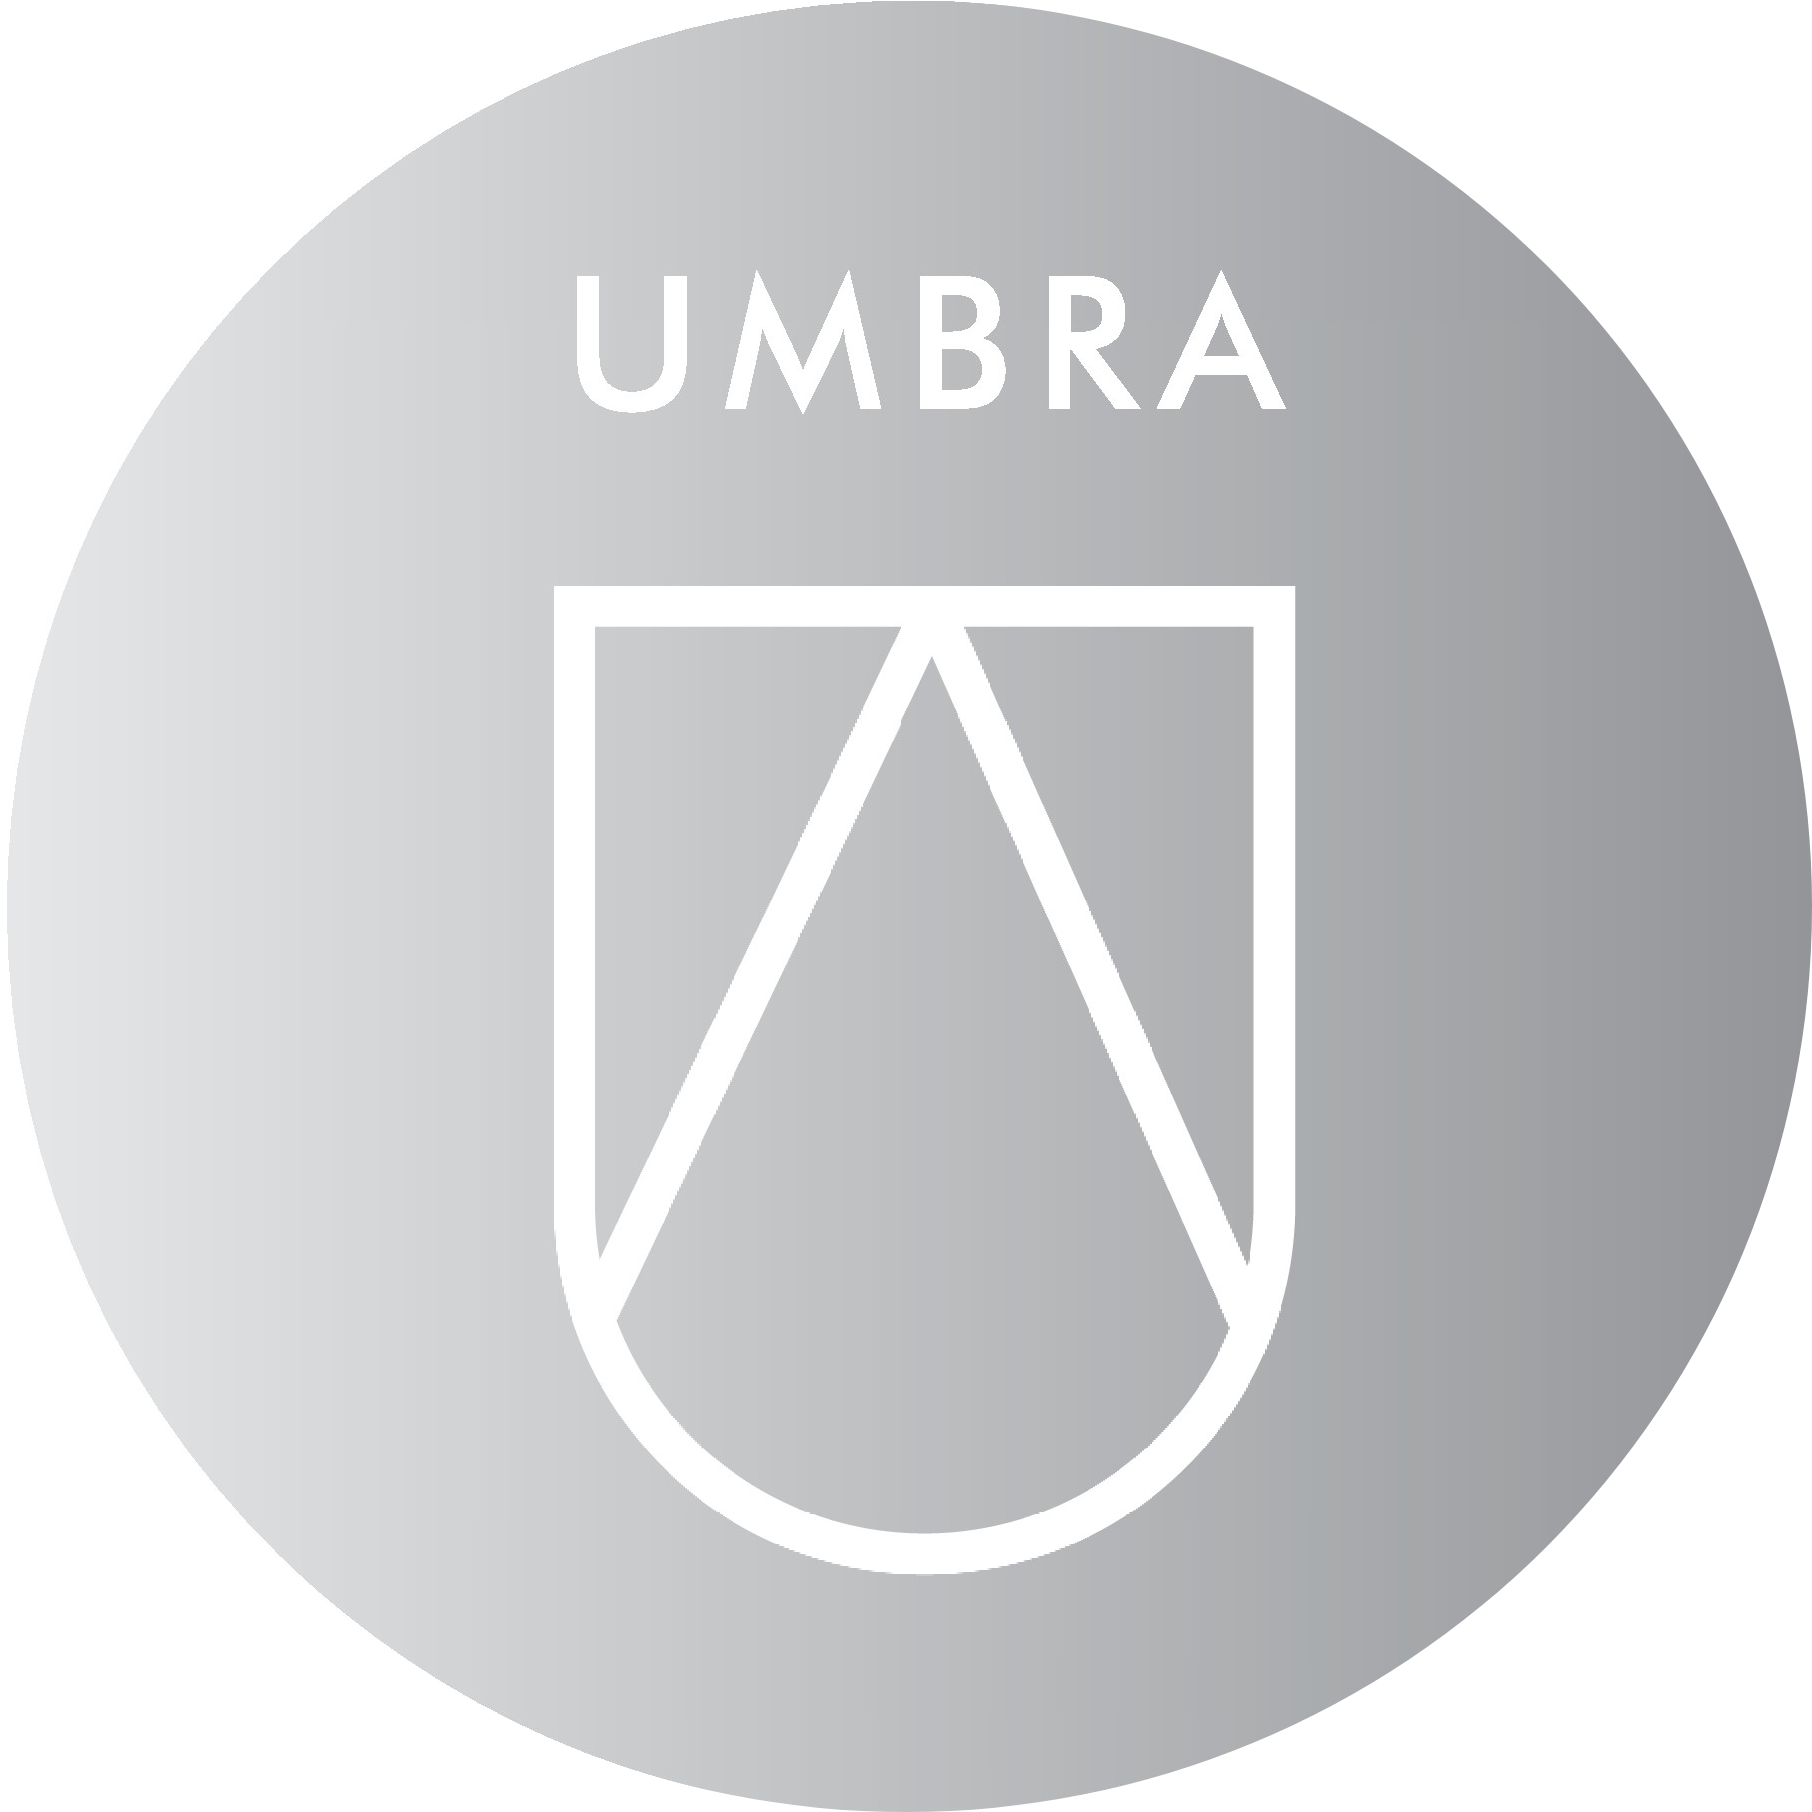 UMBRA International Group